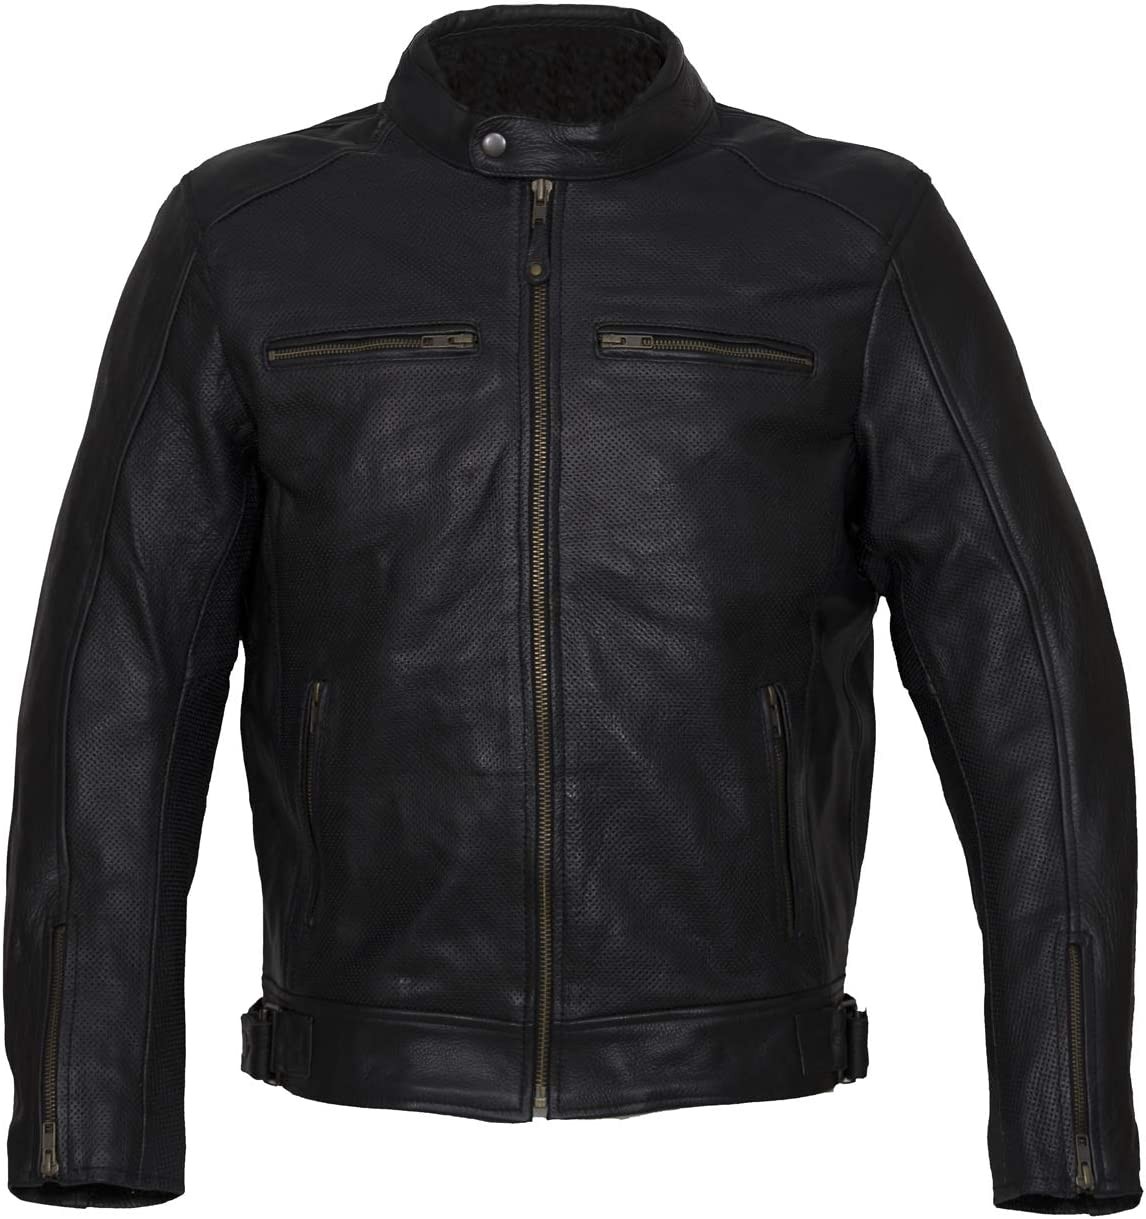 Chaqueta para moto de cuero perforado, HOLLISTER RACE de Iguana Custom Collection. (2XL)